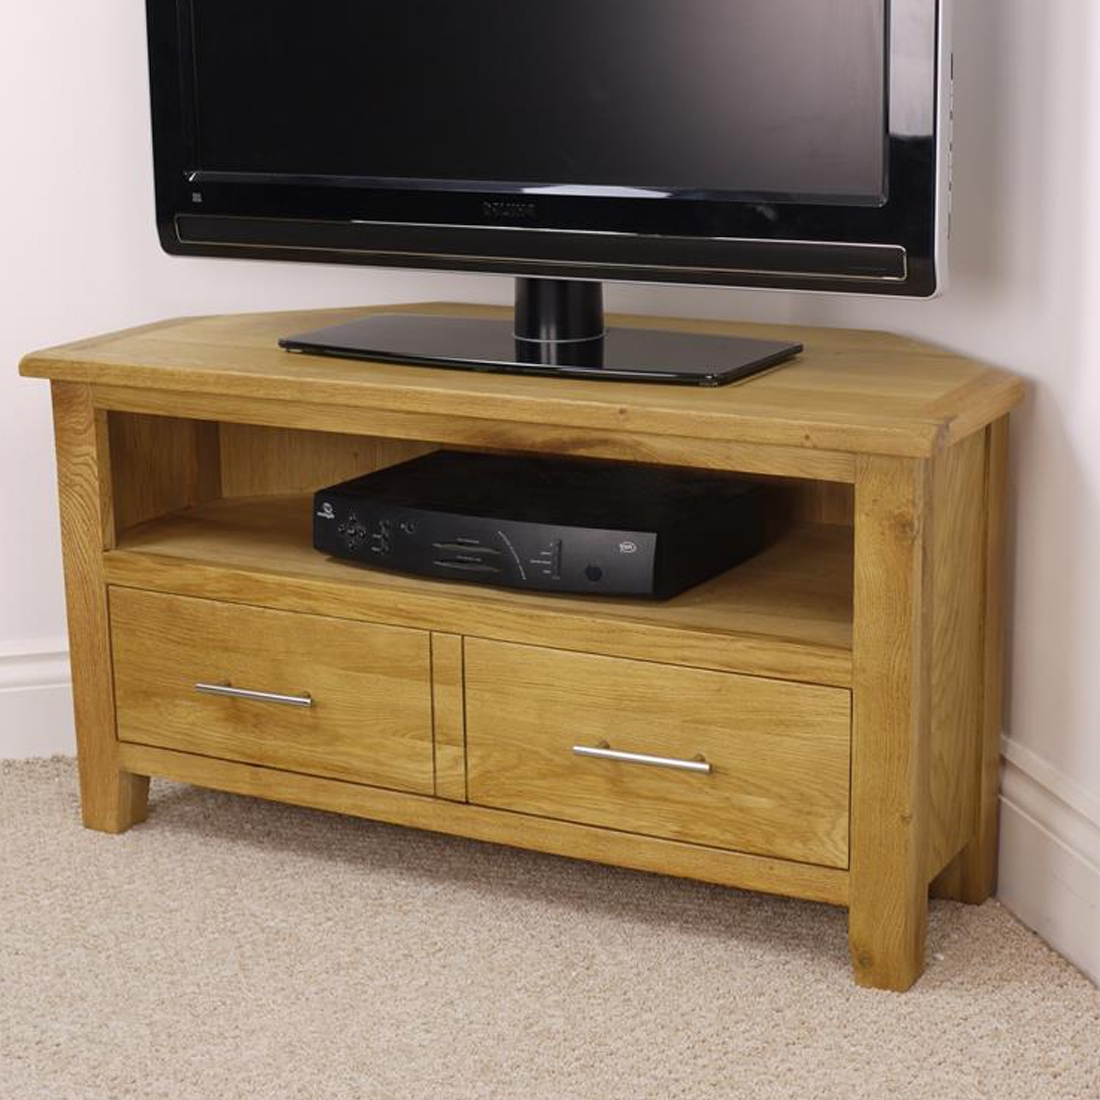 Corner Wooden Tv Stands Pertaining To Popular Corner Tv Stand And Its Benefits – Furnish Ideas (View 2 of 20)